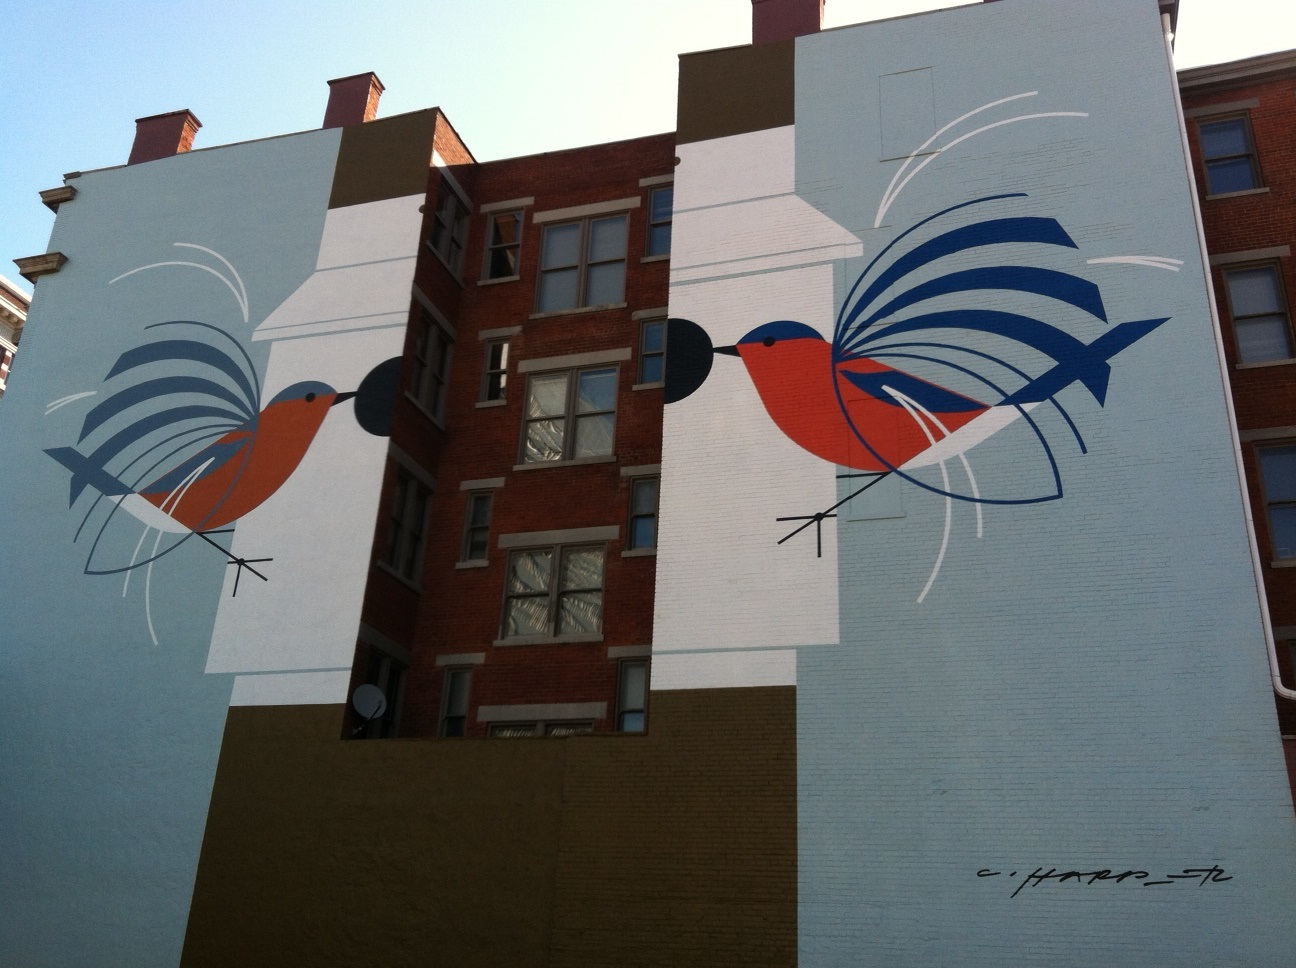 1000 images about trompe l oeil murales street art on for Charley harper mural